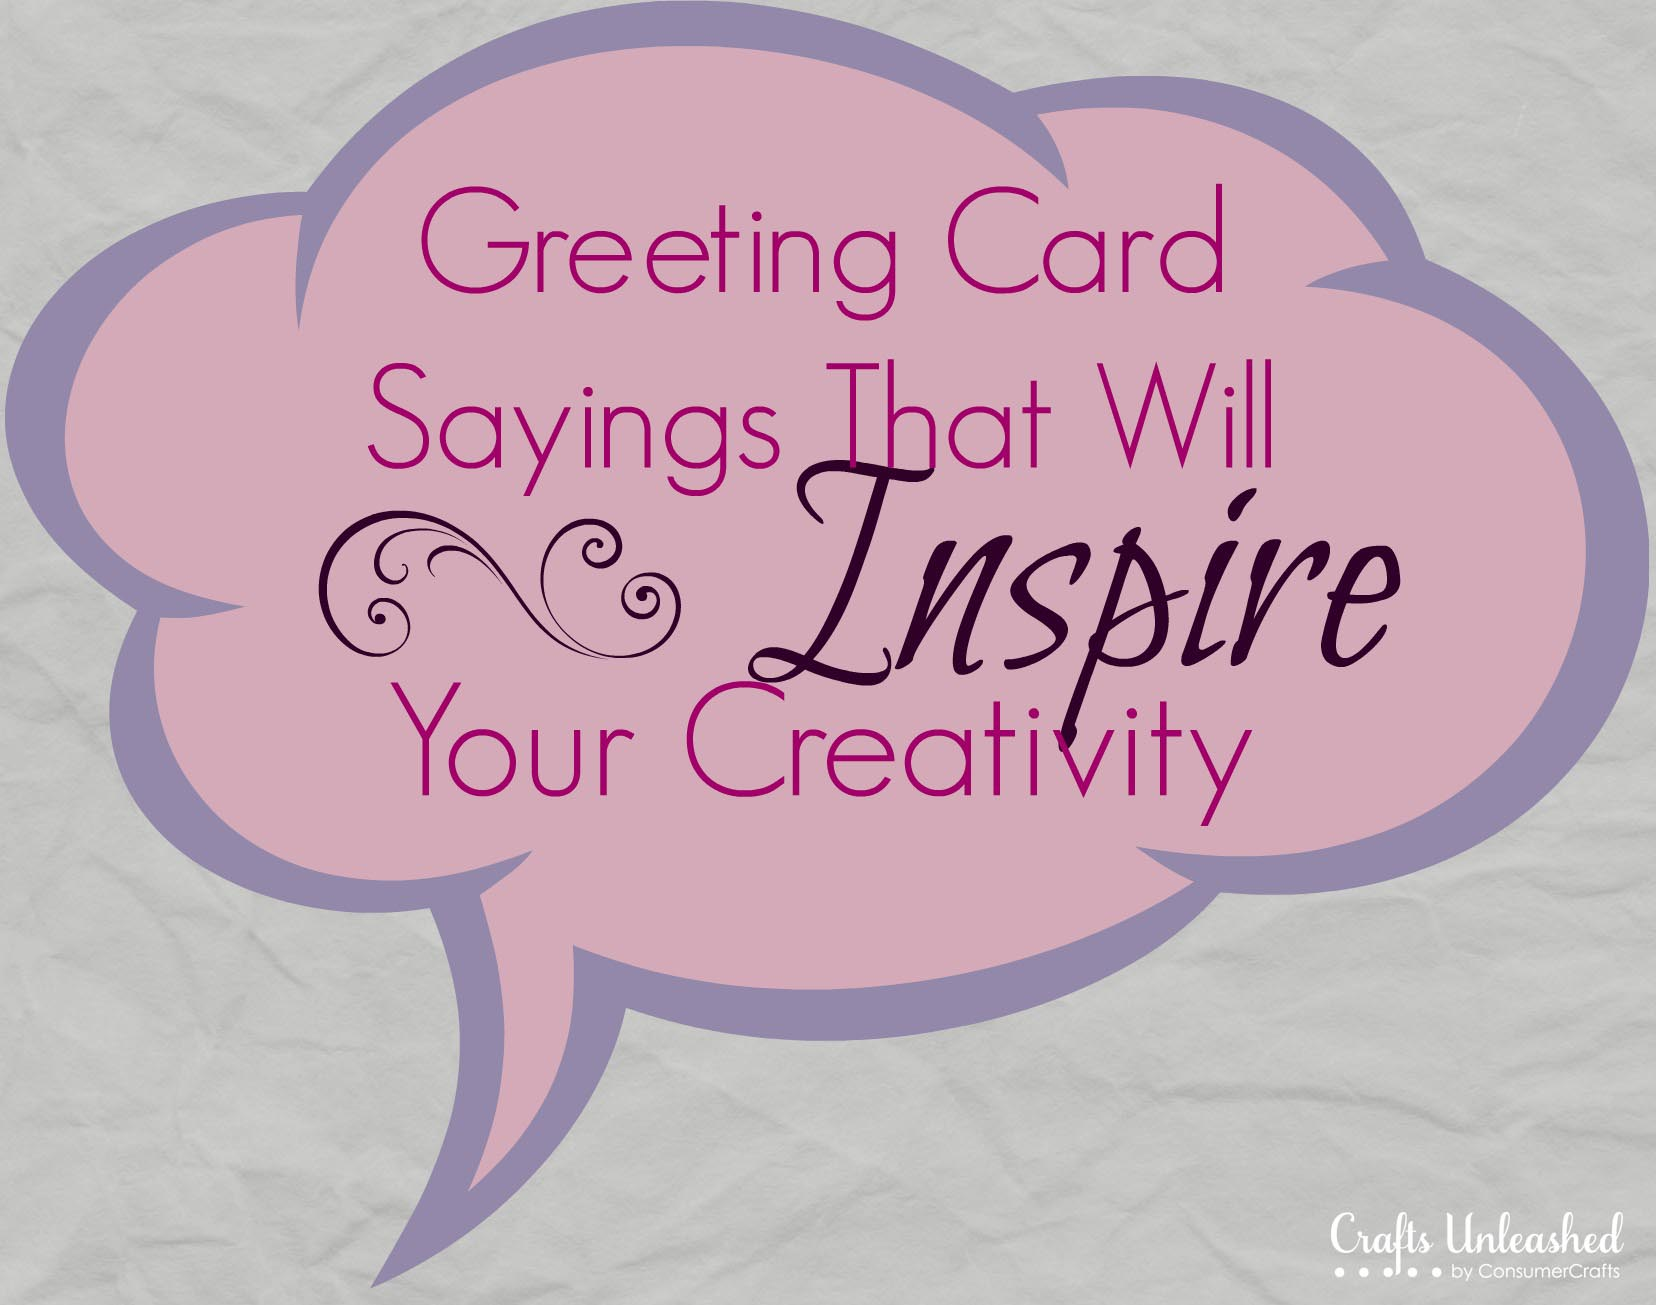 It's just a photo of Delicate Free Sayings for Greeting Cards